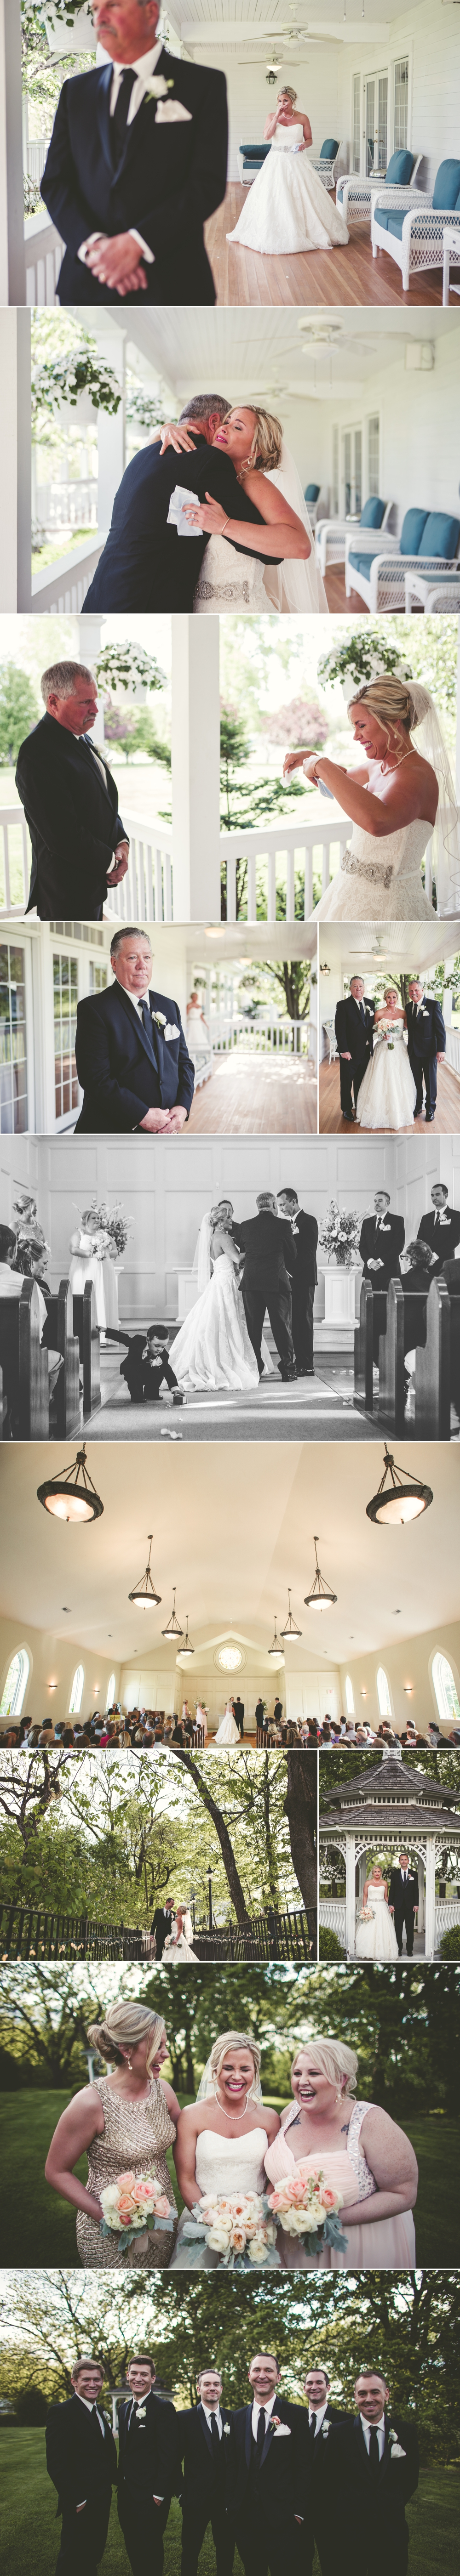 jason_domingues_photography_best_kansas_city_photographer_kc_wedding_hawthorne_house_2